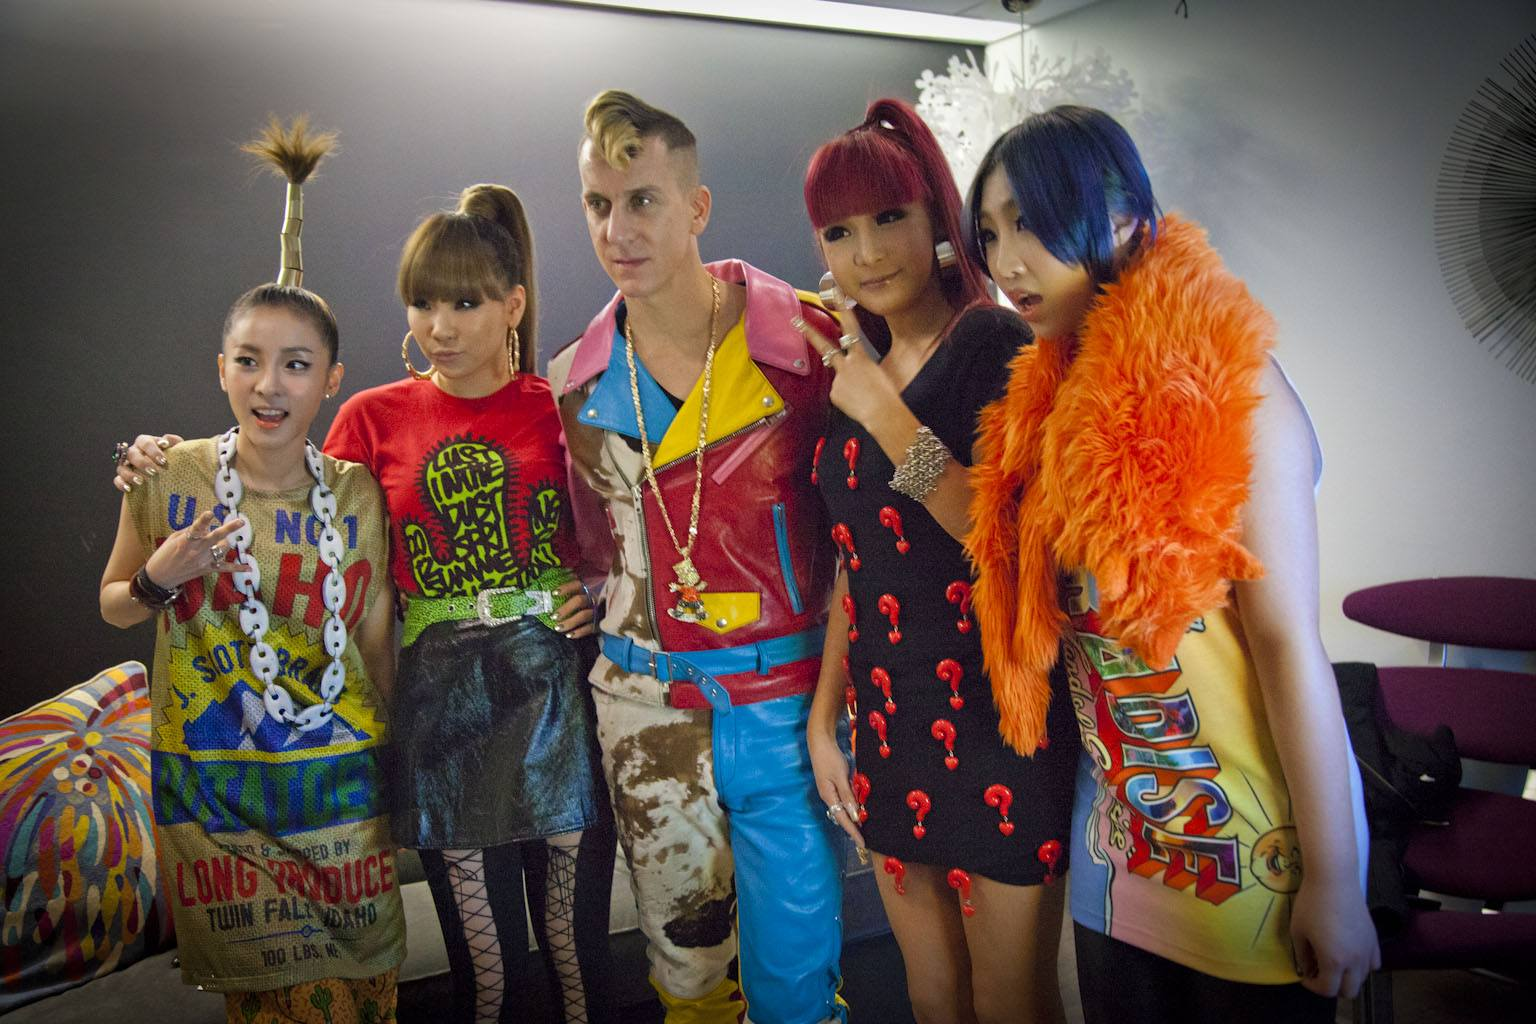 2NE1 pose with Jeremy Scott backstage.